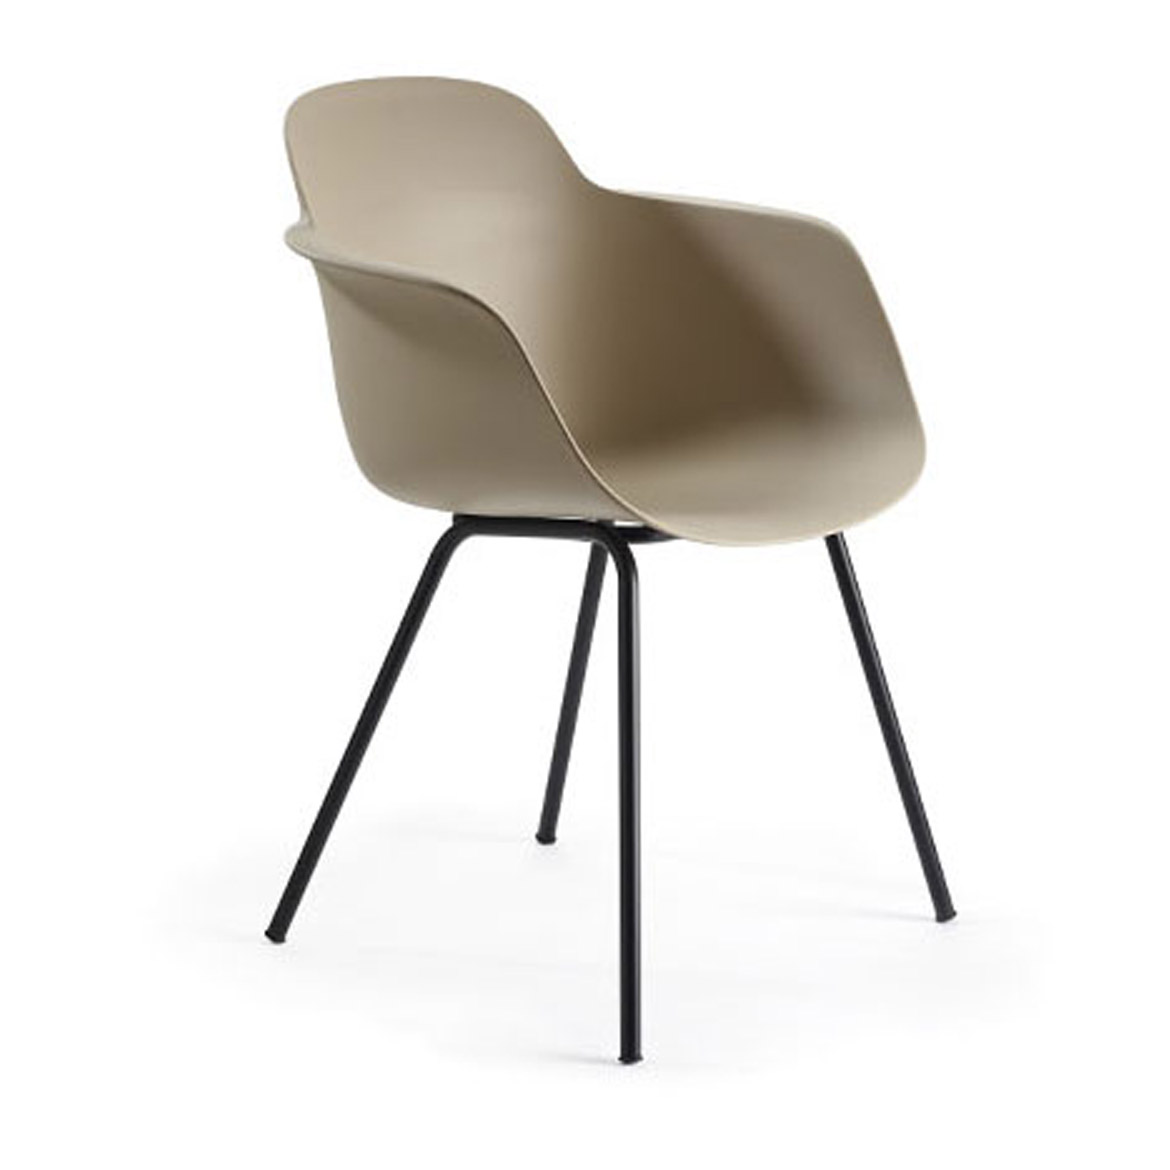 A modern armchair with polypropylene shell, also avaliable with padded seat. There are several different base options made of both metal or wood.